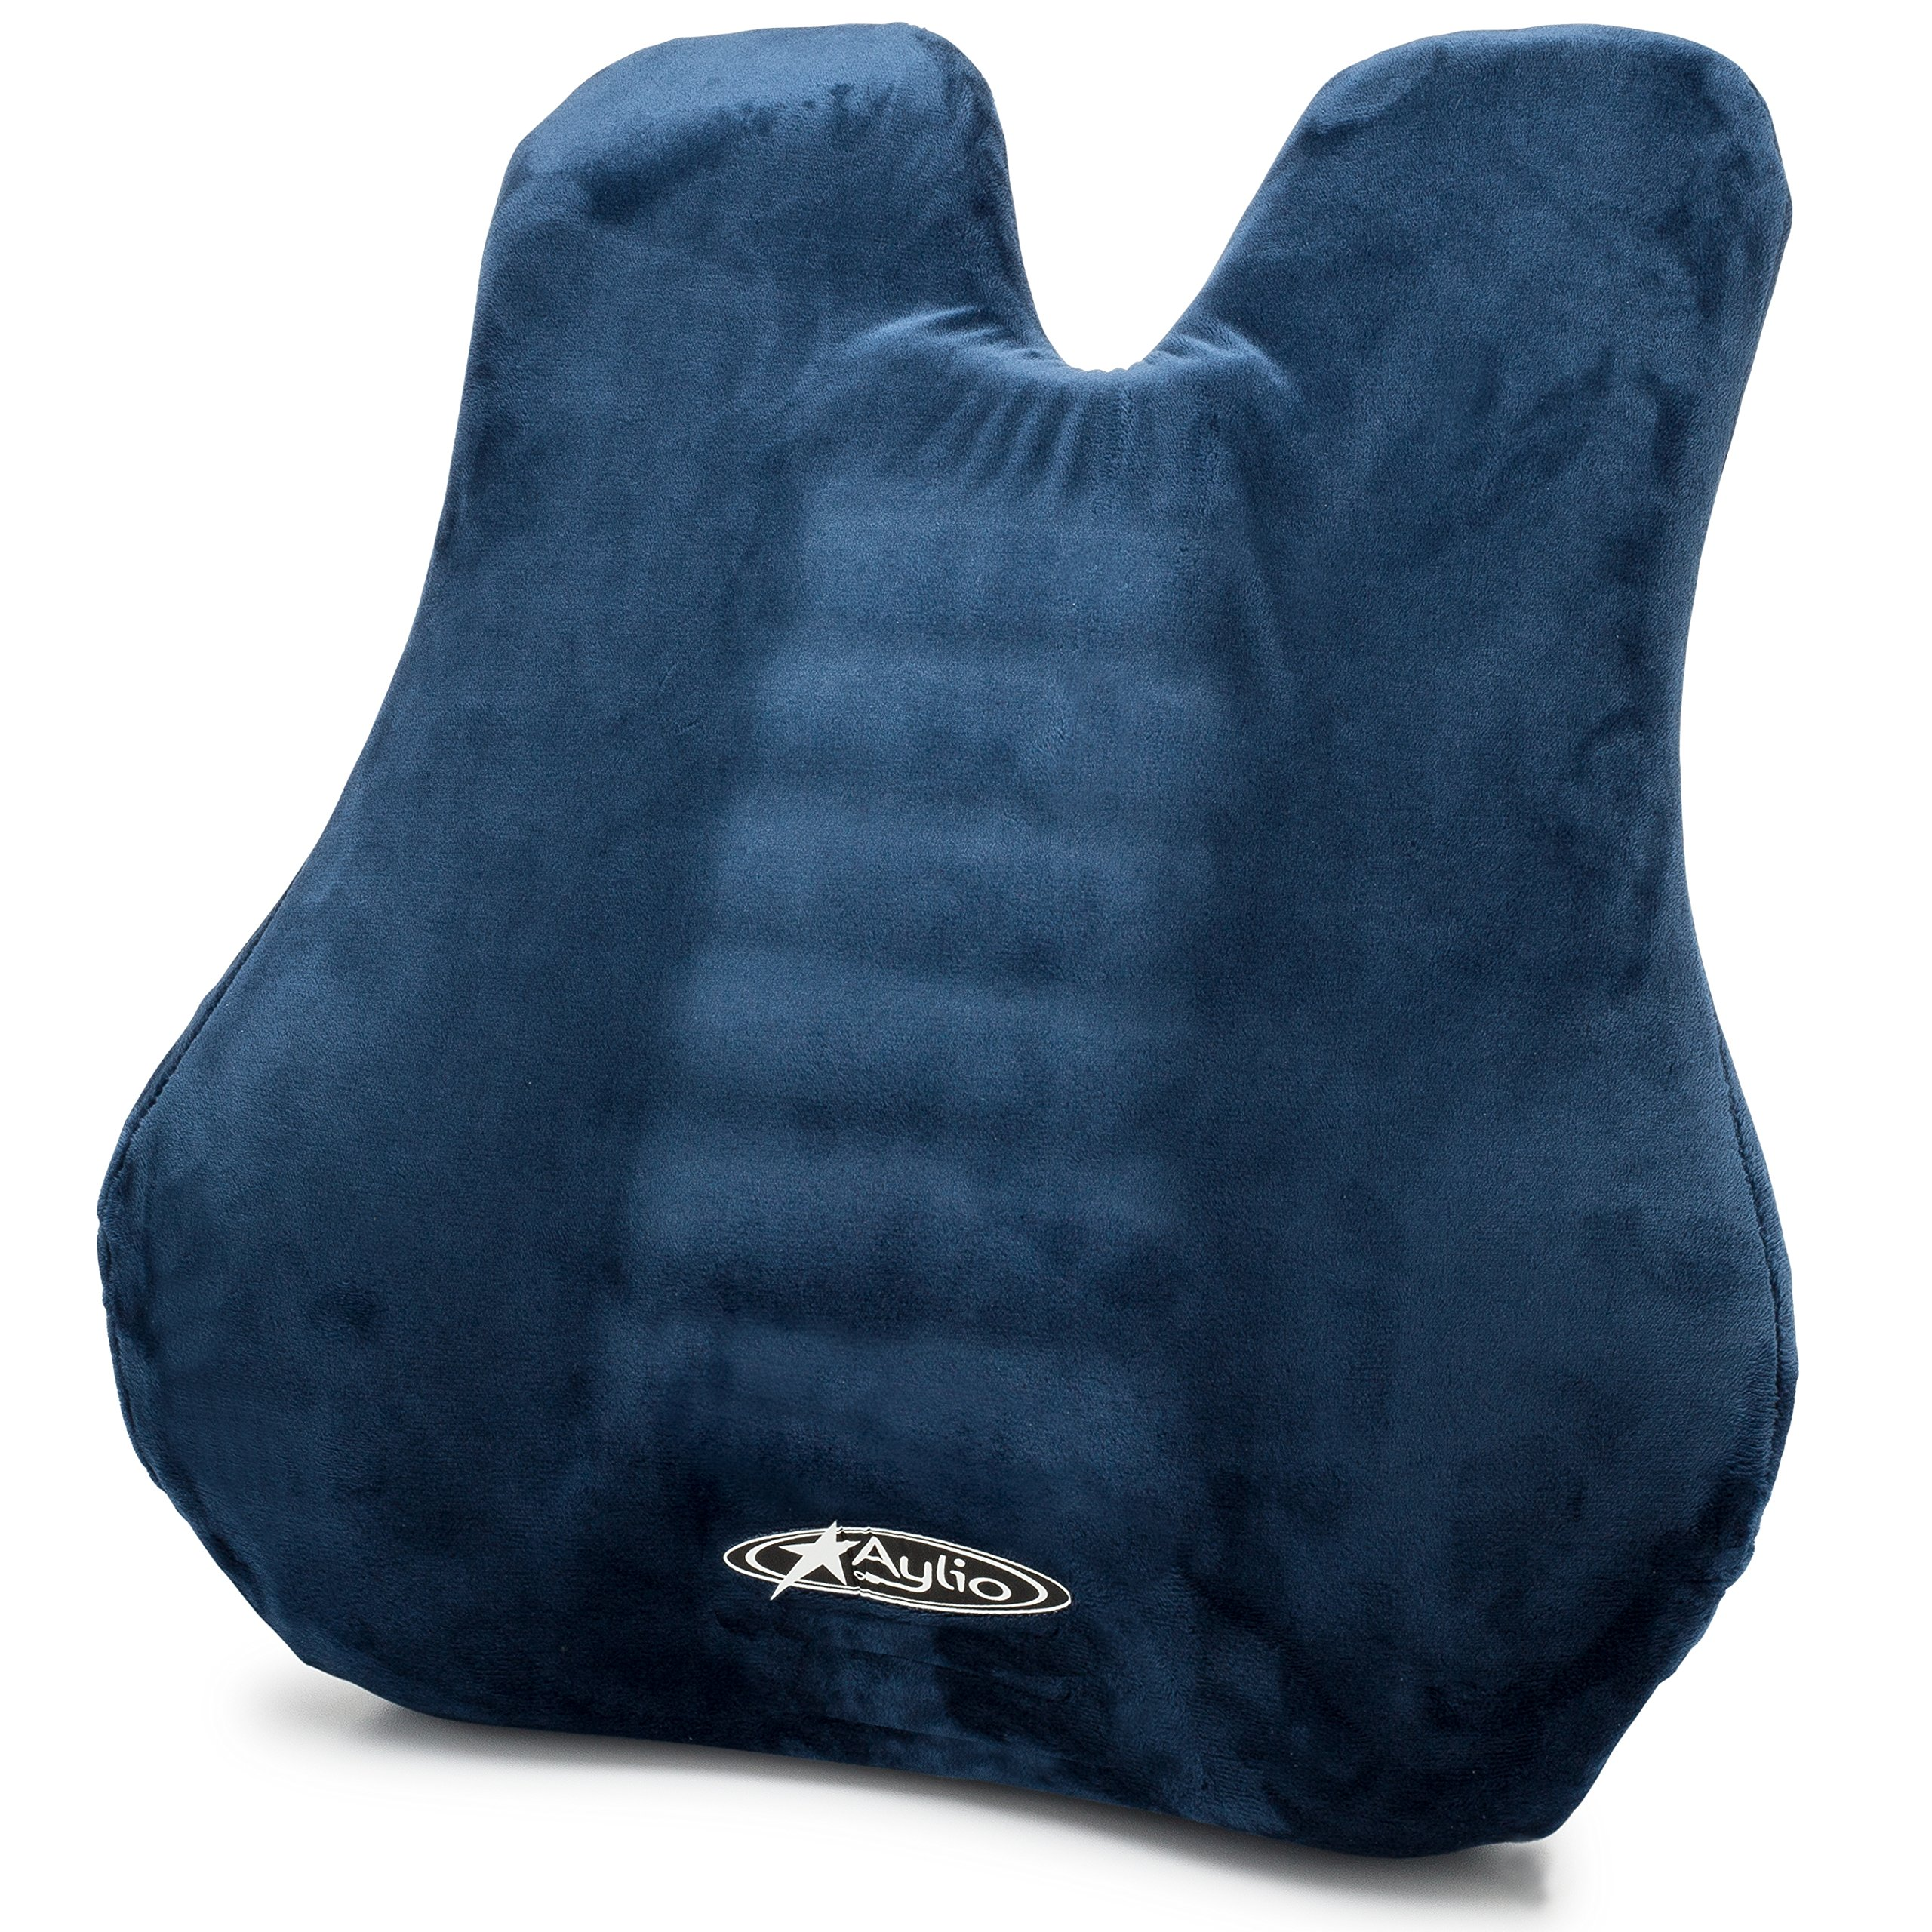 Aylio Back Cushion | Memory Foam Lumbar Support Pillow for Home, Car Seat and Office Chair by Aylio